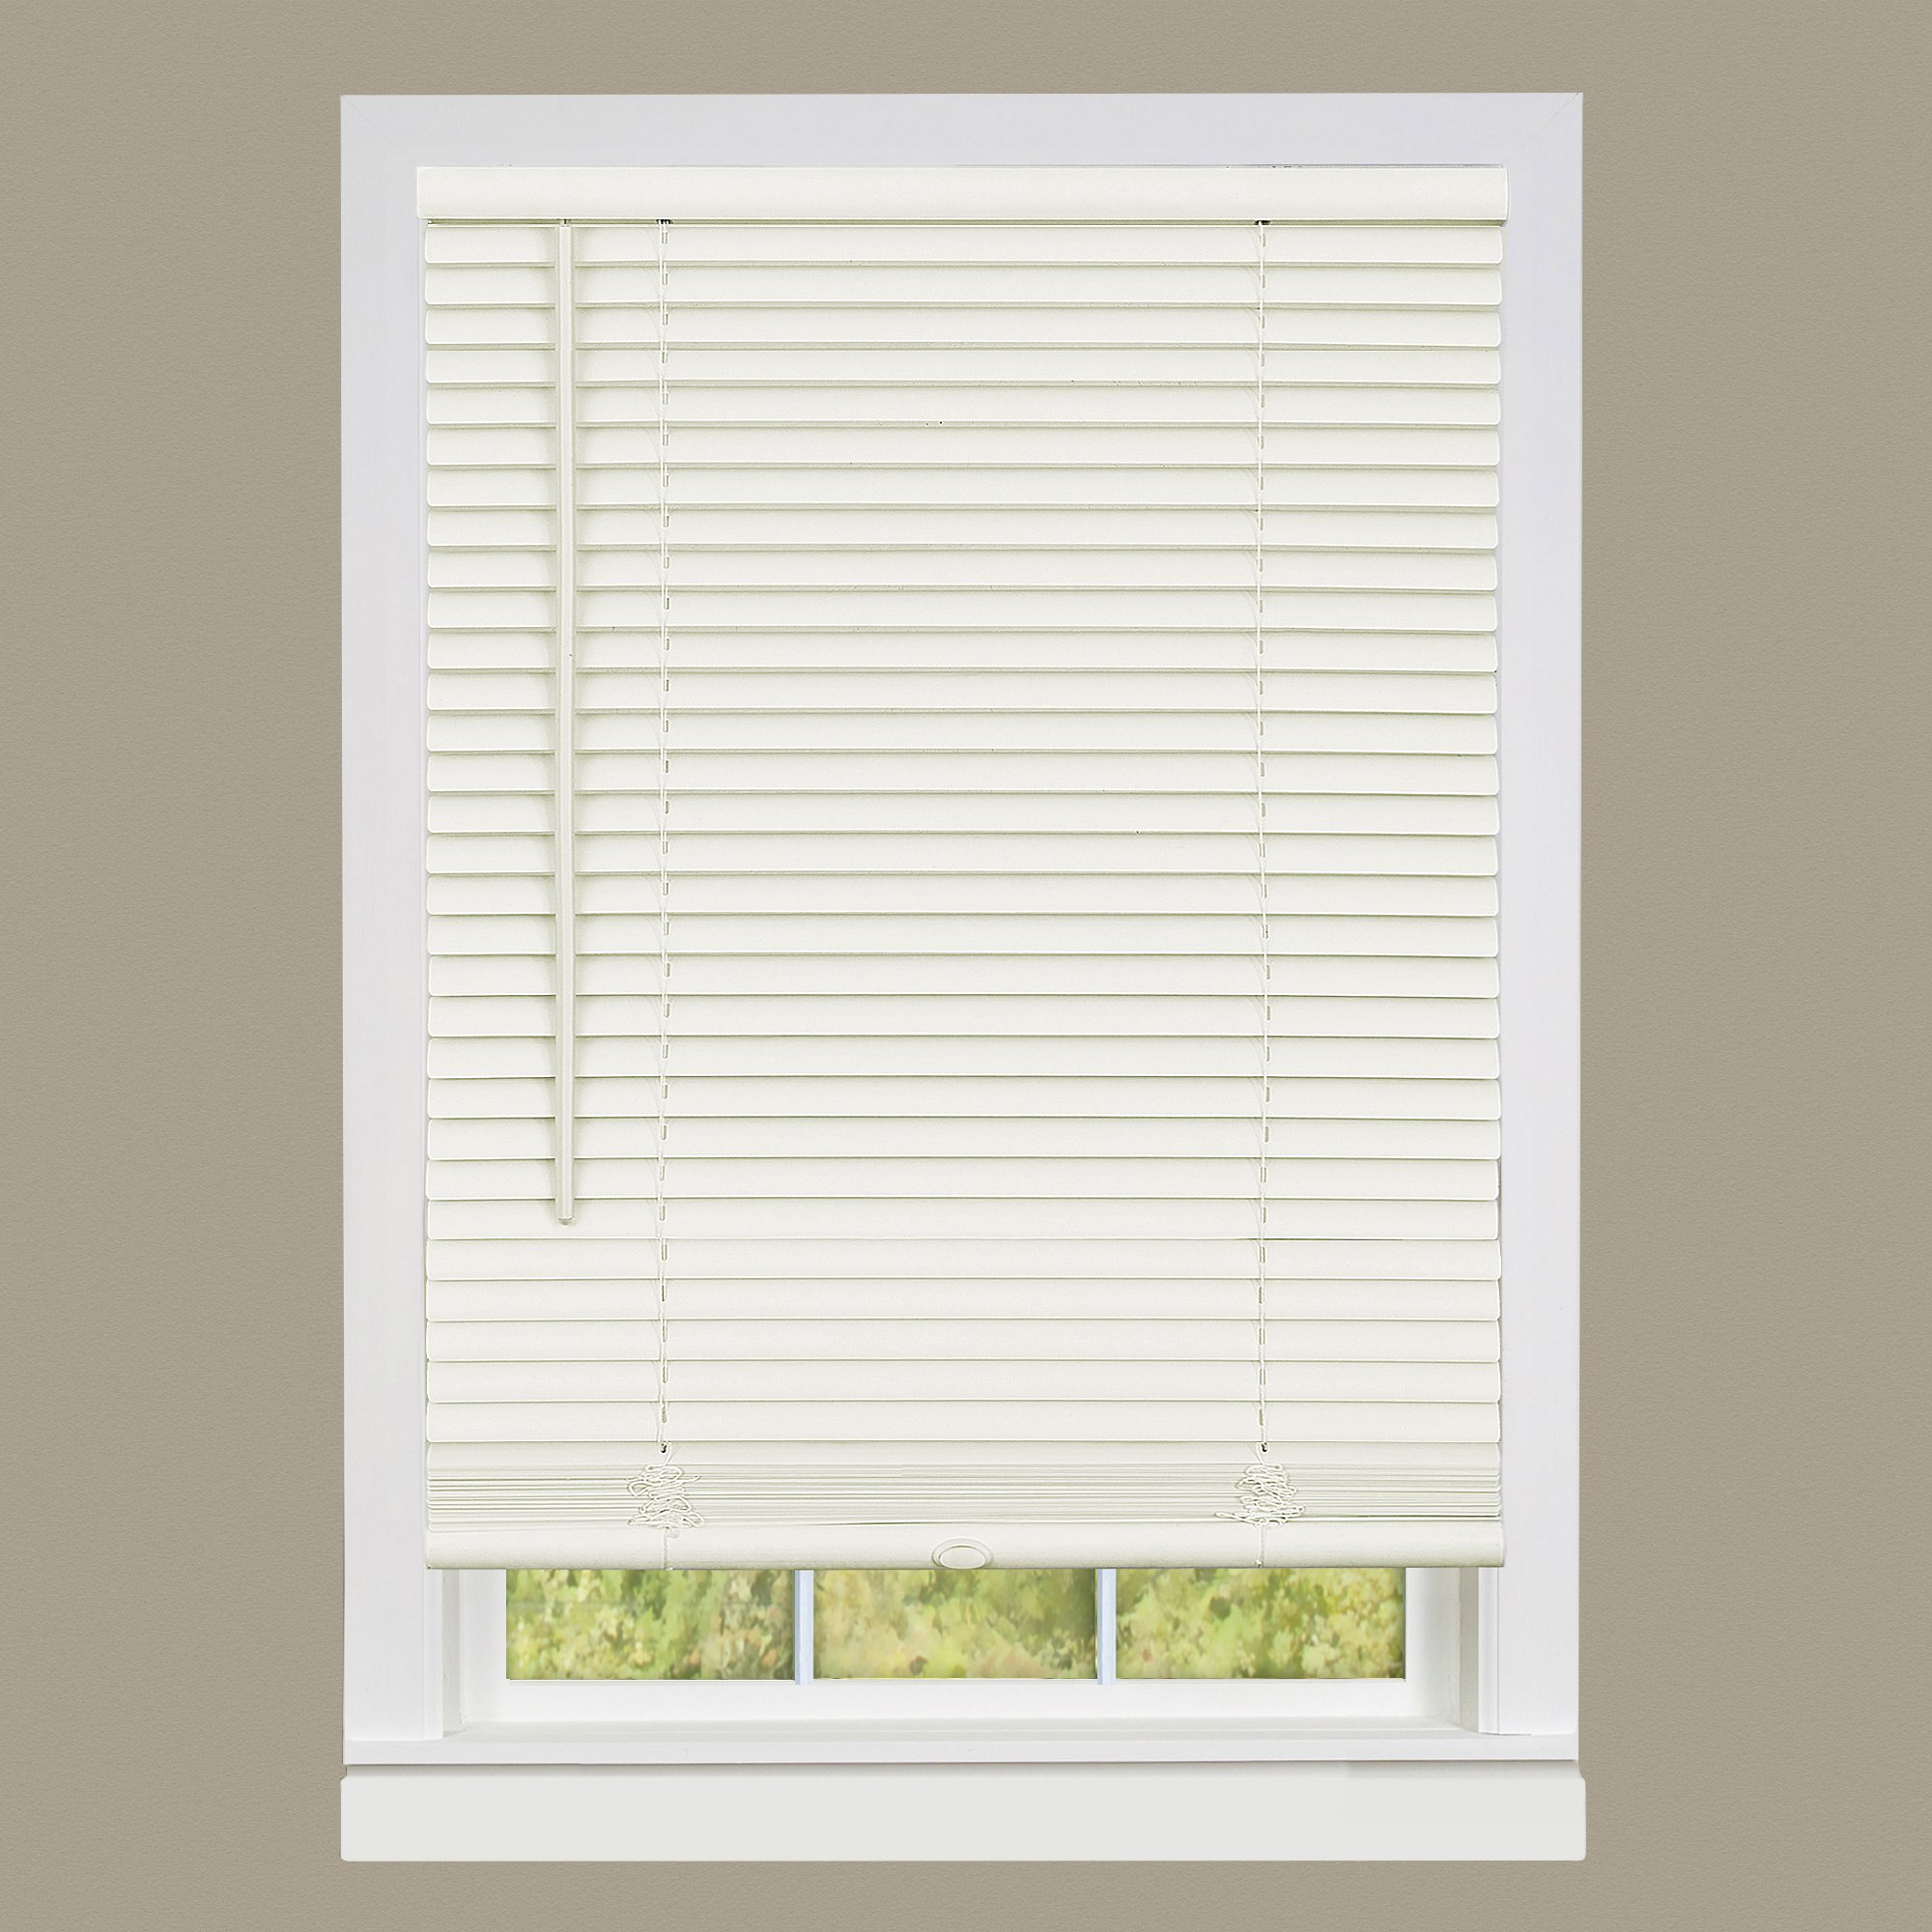 Achim Home Furnishings DSG227AL06 Deluxe Sundown G2 Cordless Blinds, 27'' x 64'', Alabaster by Achim Home Furnishings